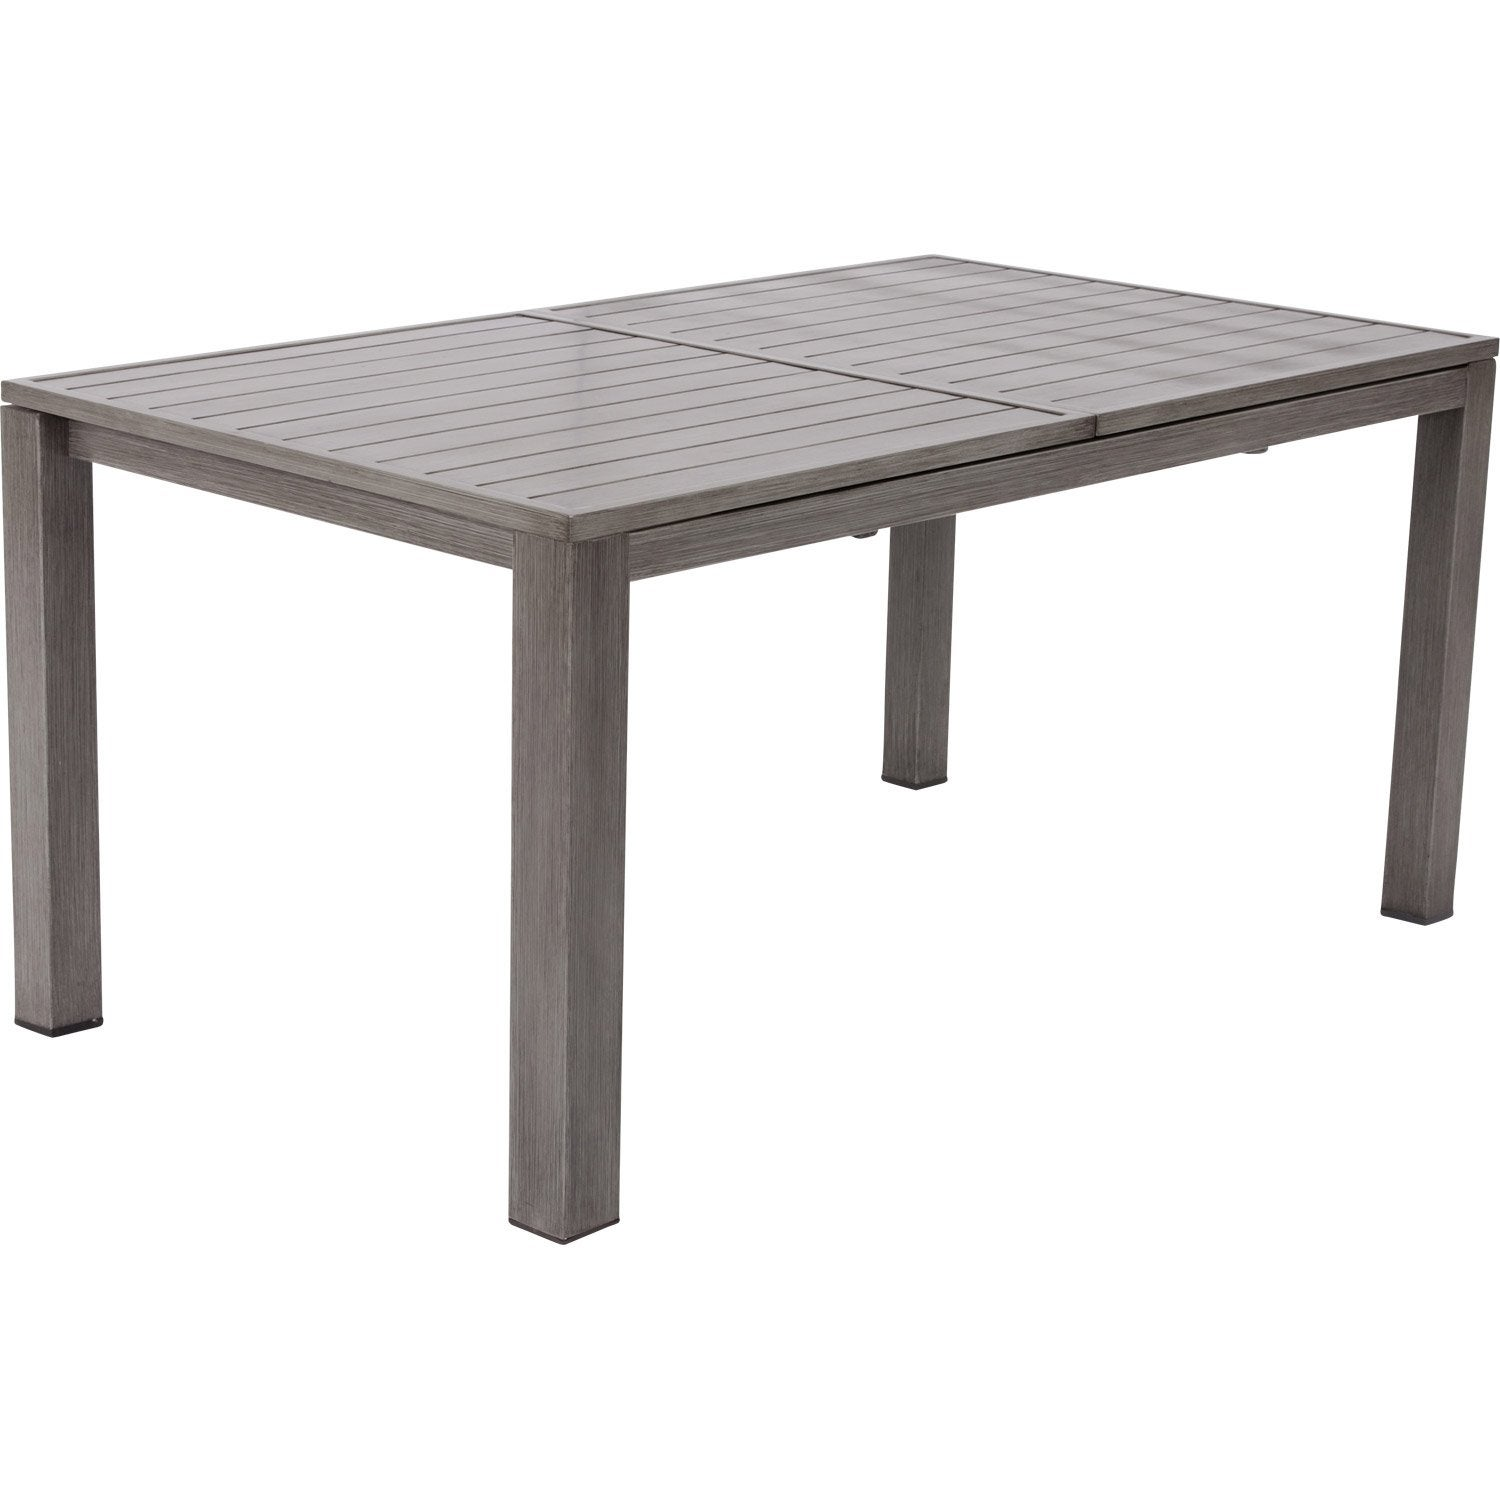 Table de jardin naterial antibes rectangulaire gris look - Pied de table basse leroy merlin ...